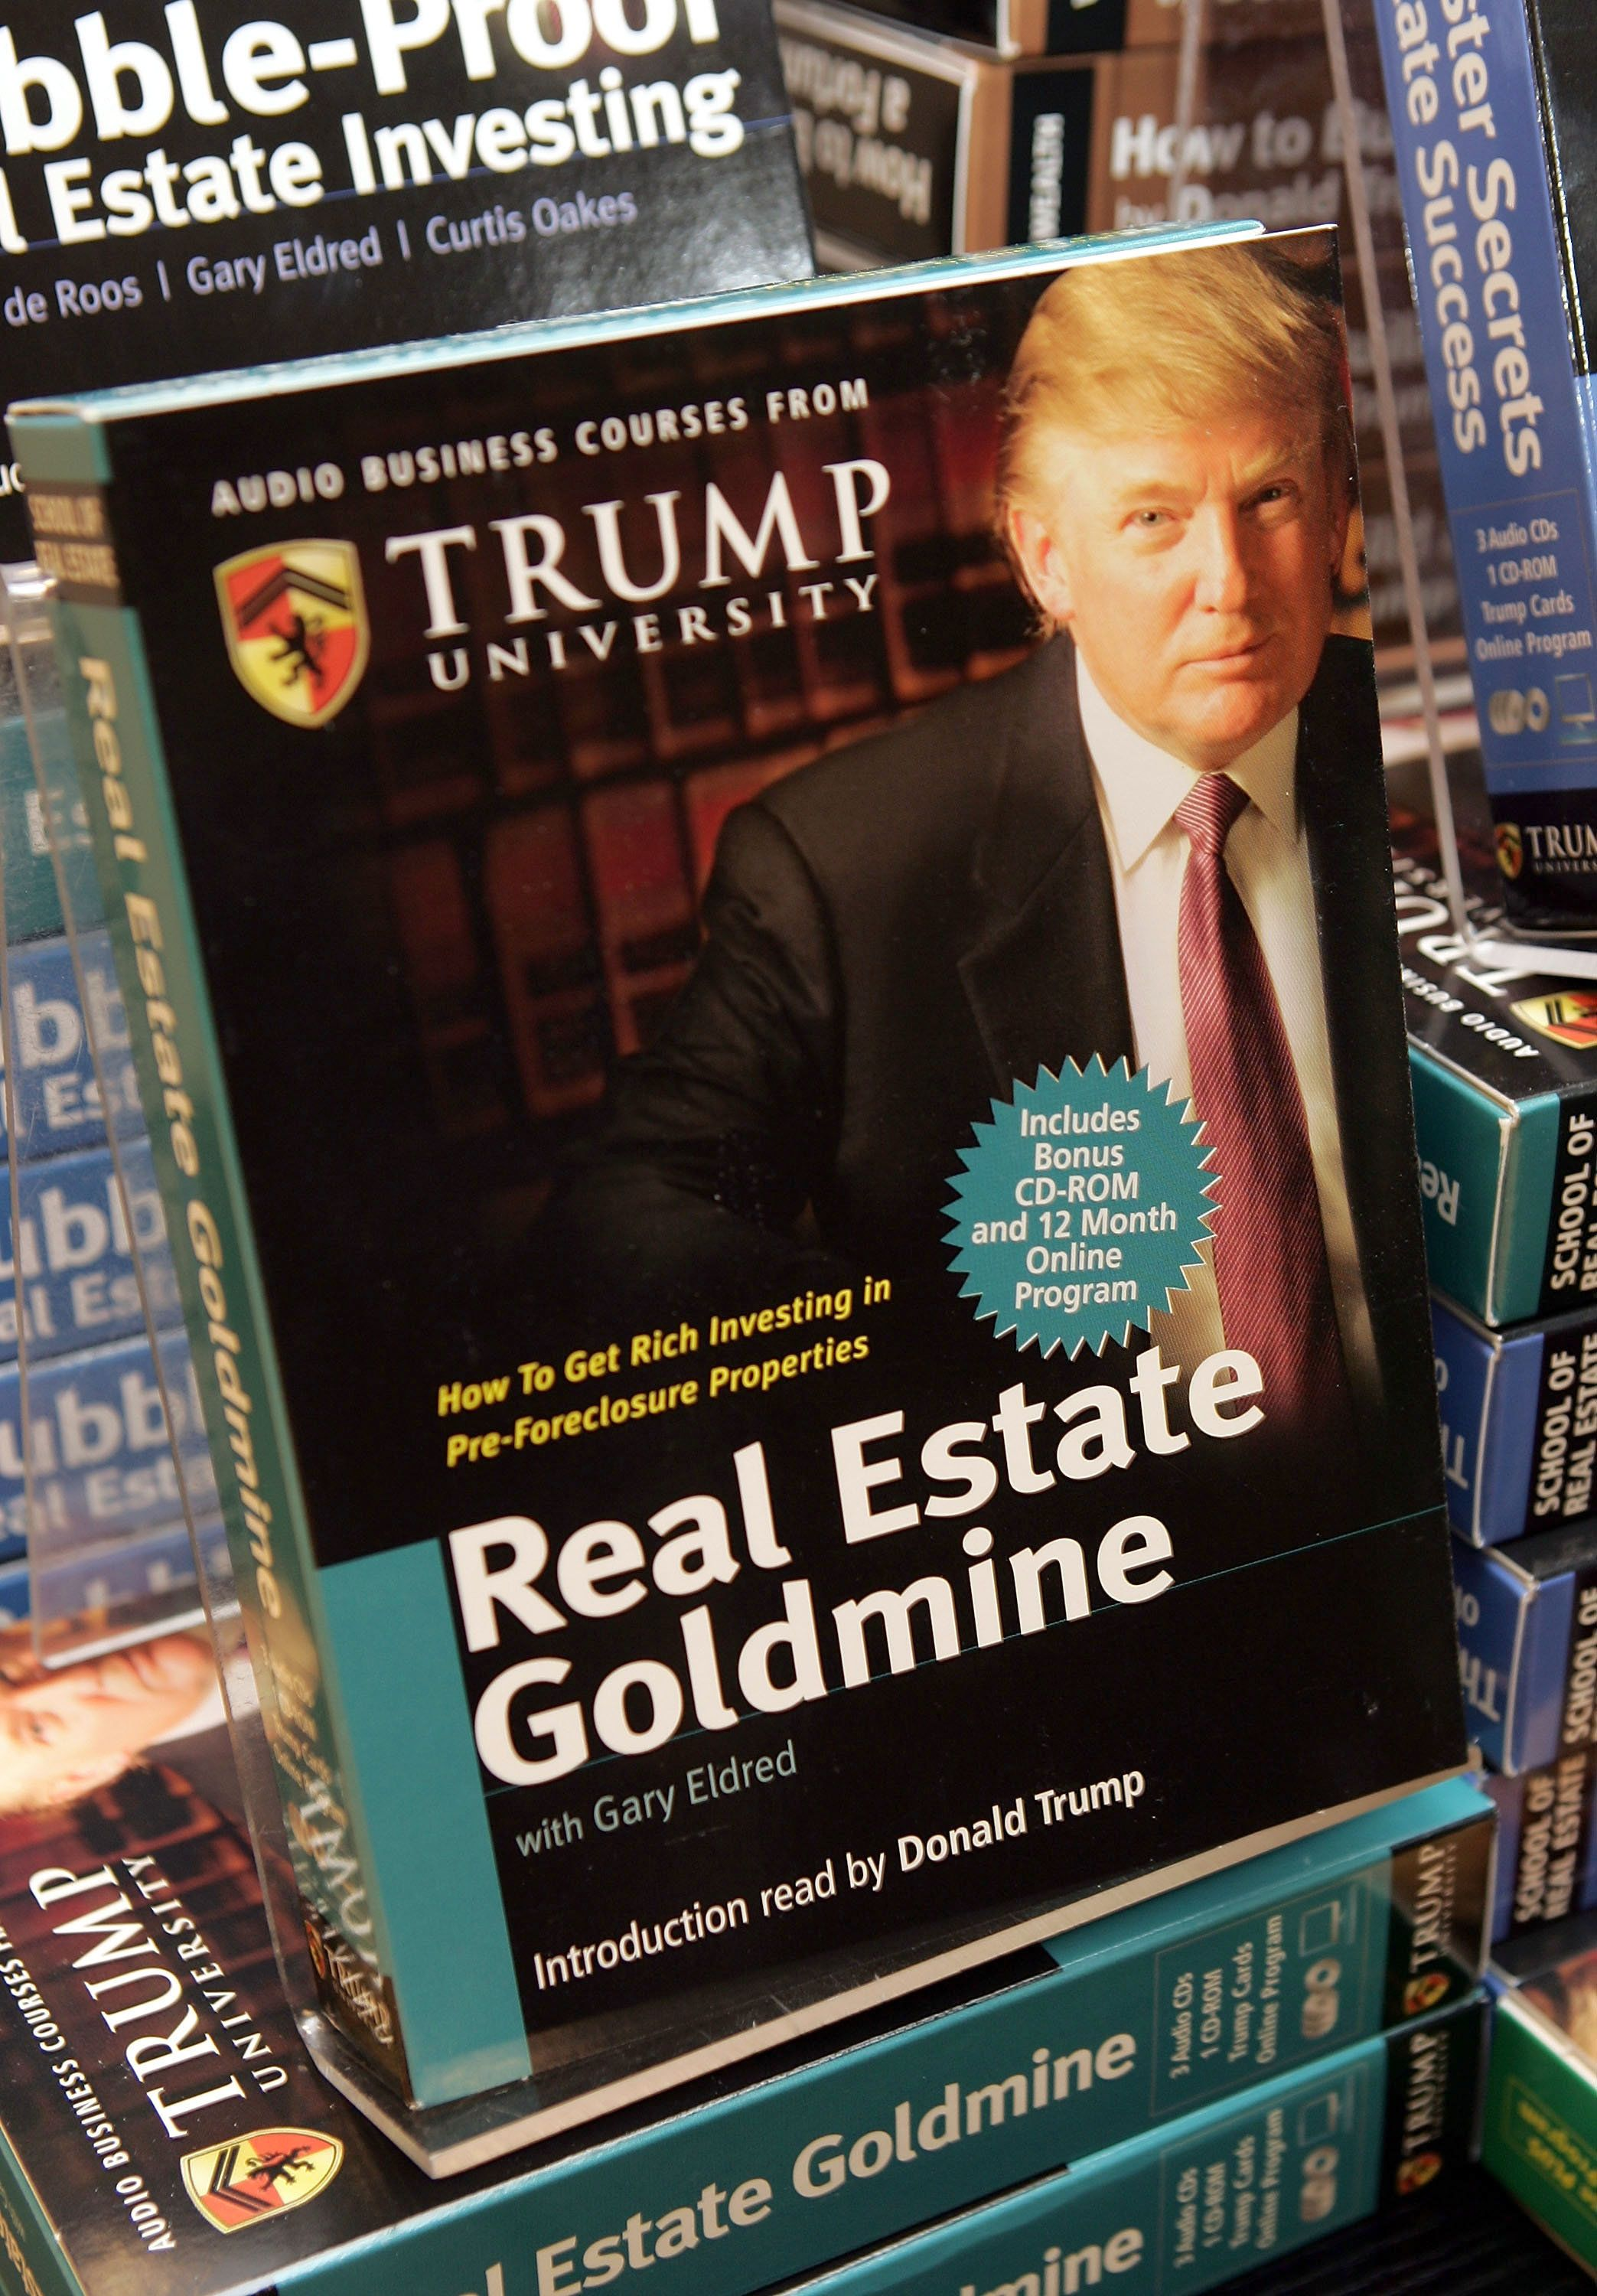 NEW YORK - JANUARY 10:  Copies of 'How To Build Wealth,' which is a series of nine audio business courses created by Trump University, lie on display at a Barnes & Noble store January 10, 2005 in New York City.  (Photo by Scott Gries/Getty Images)